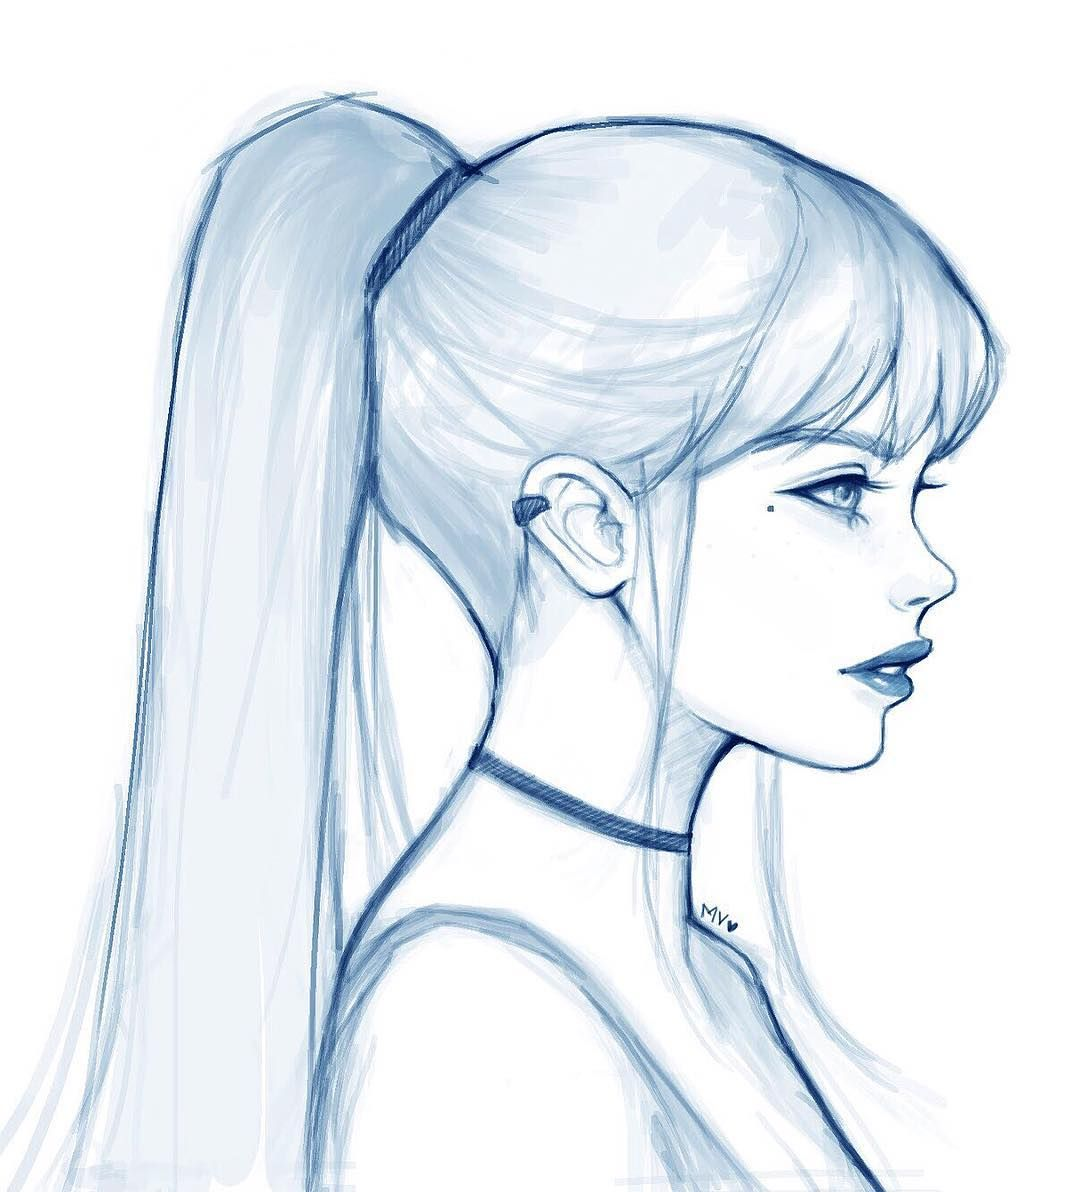 Wanted to draw a girl with a high ponytail! Any Game of